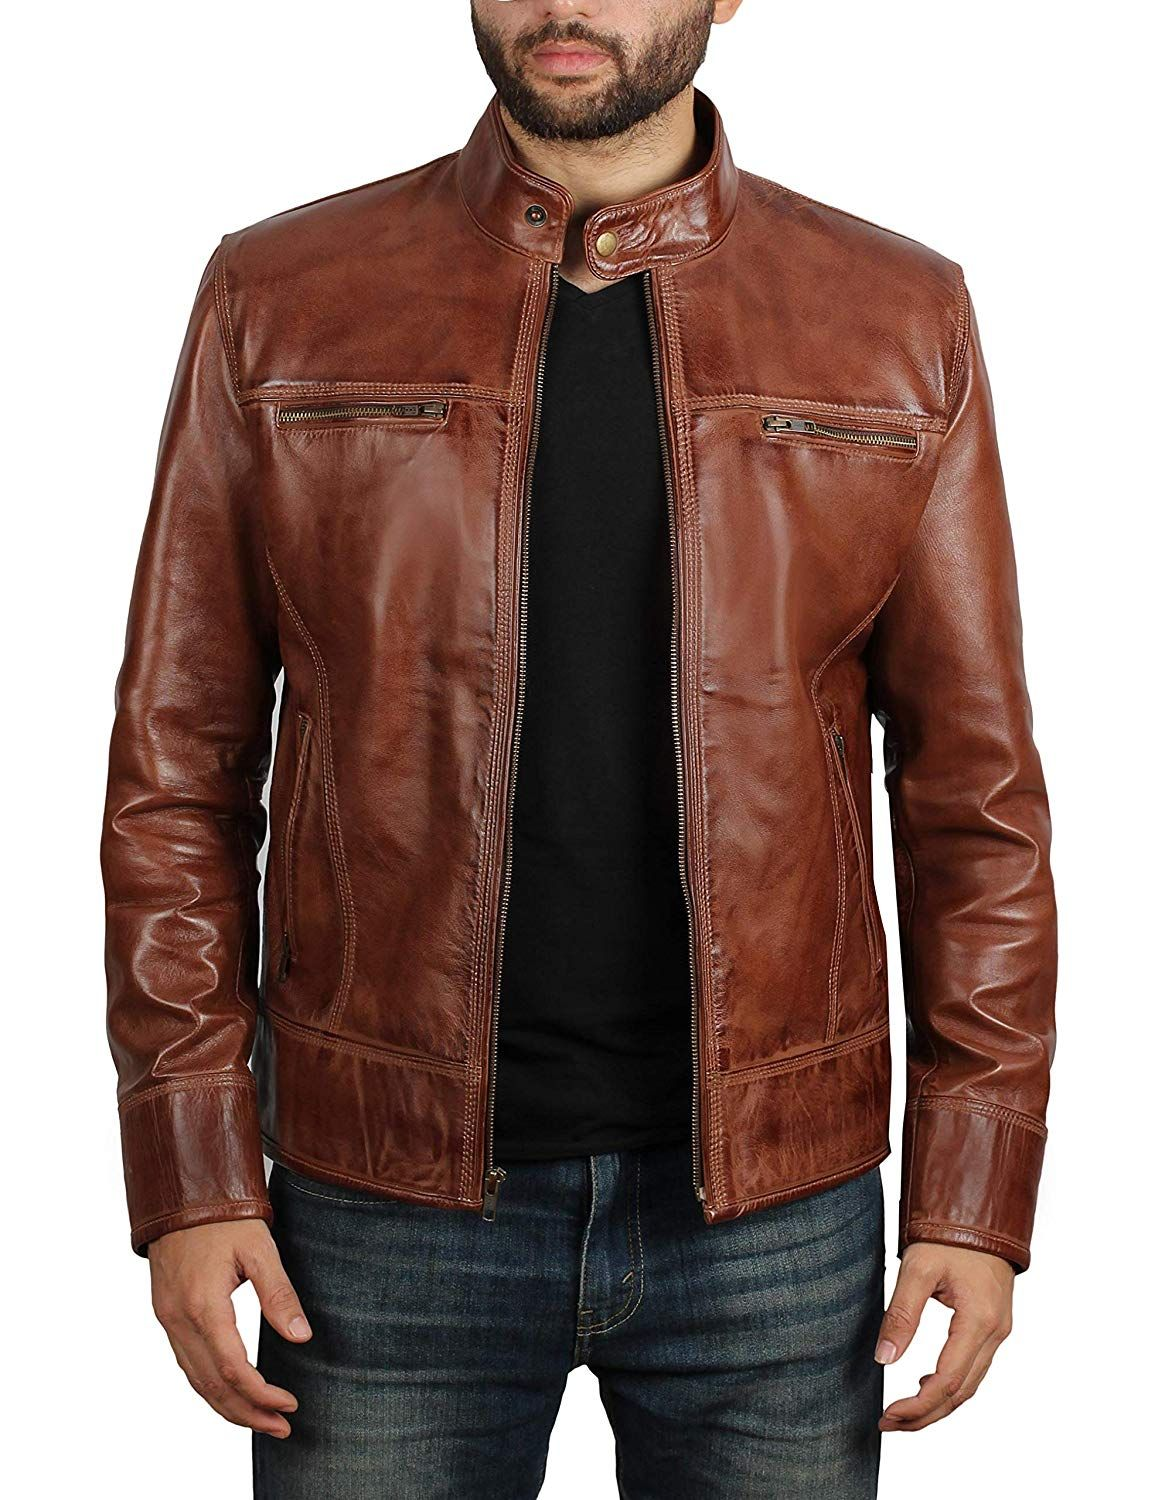 100 Genuine Lambskin Leather PREMIUM QUALITY This Mens